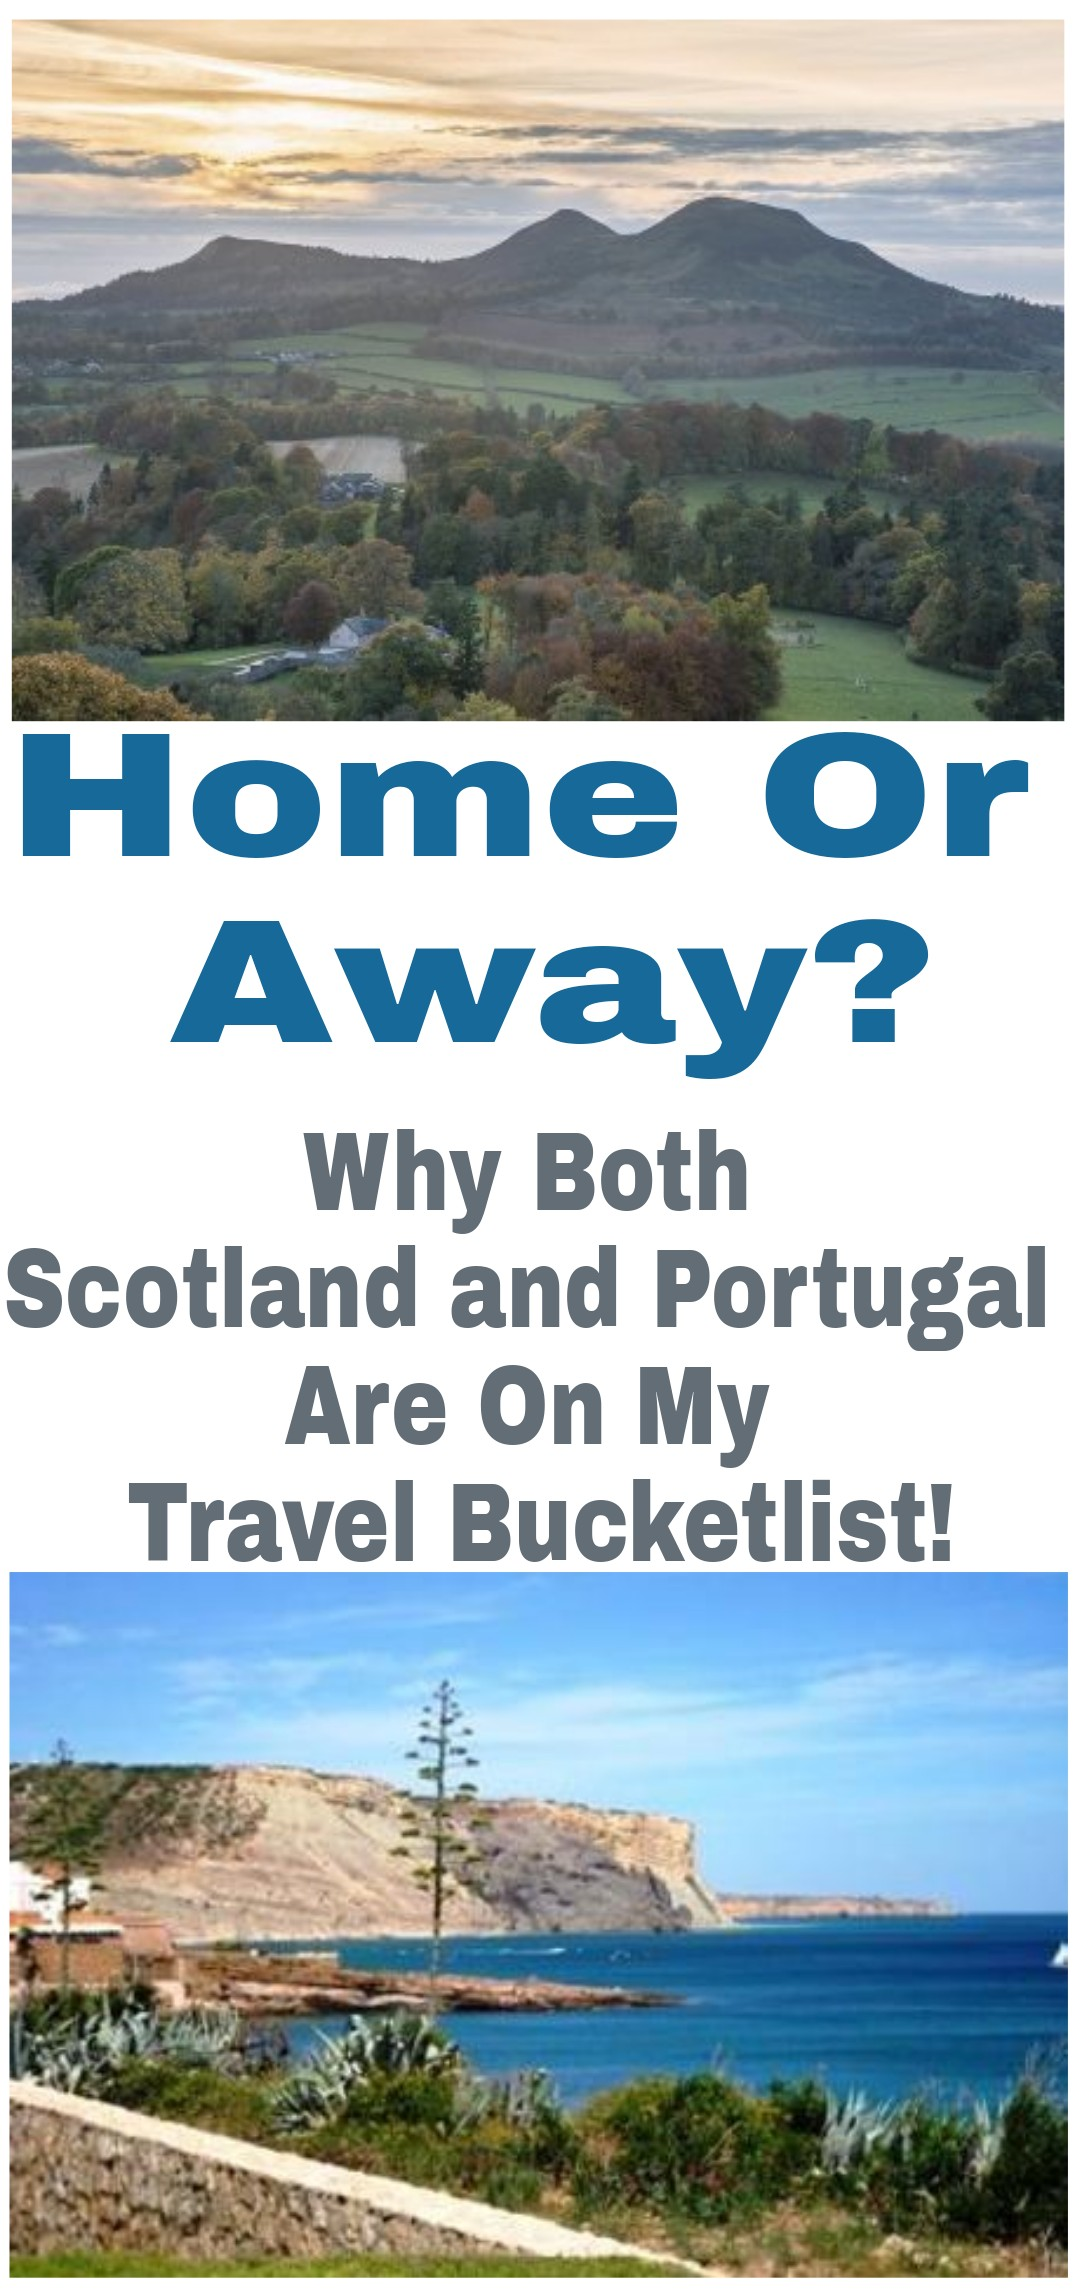 Home Or Away? Why Both Scotland And Portugal Are On My Travel Bucketlist!